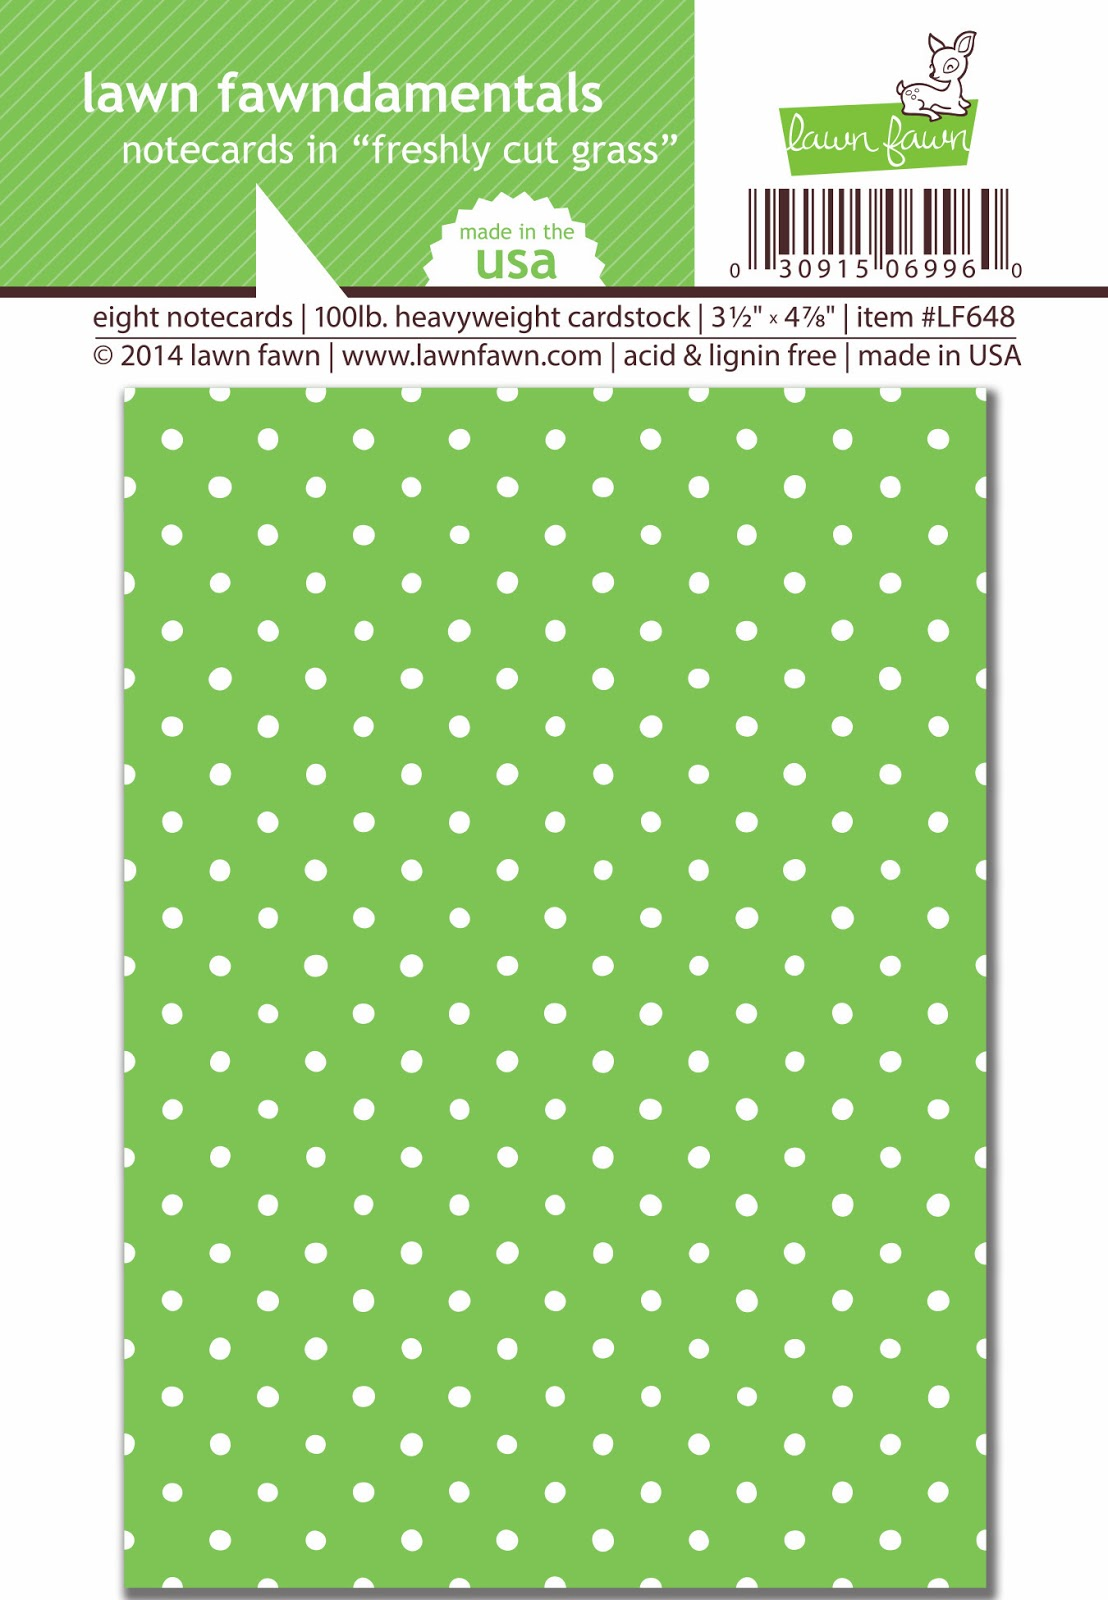 http://www.lawnfawn.com/collections/new-products/products/freshly-cut-grass-notecards